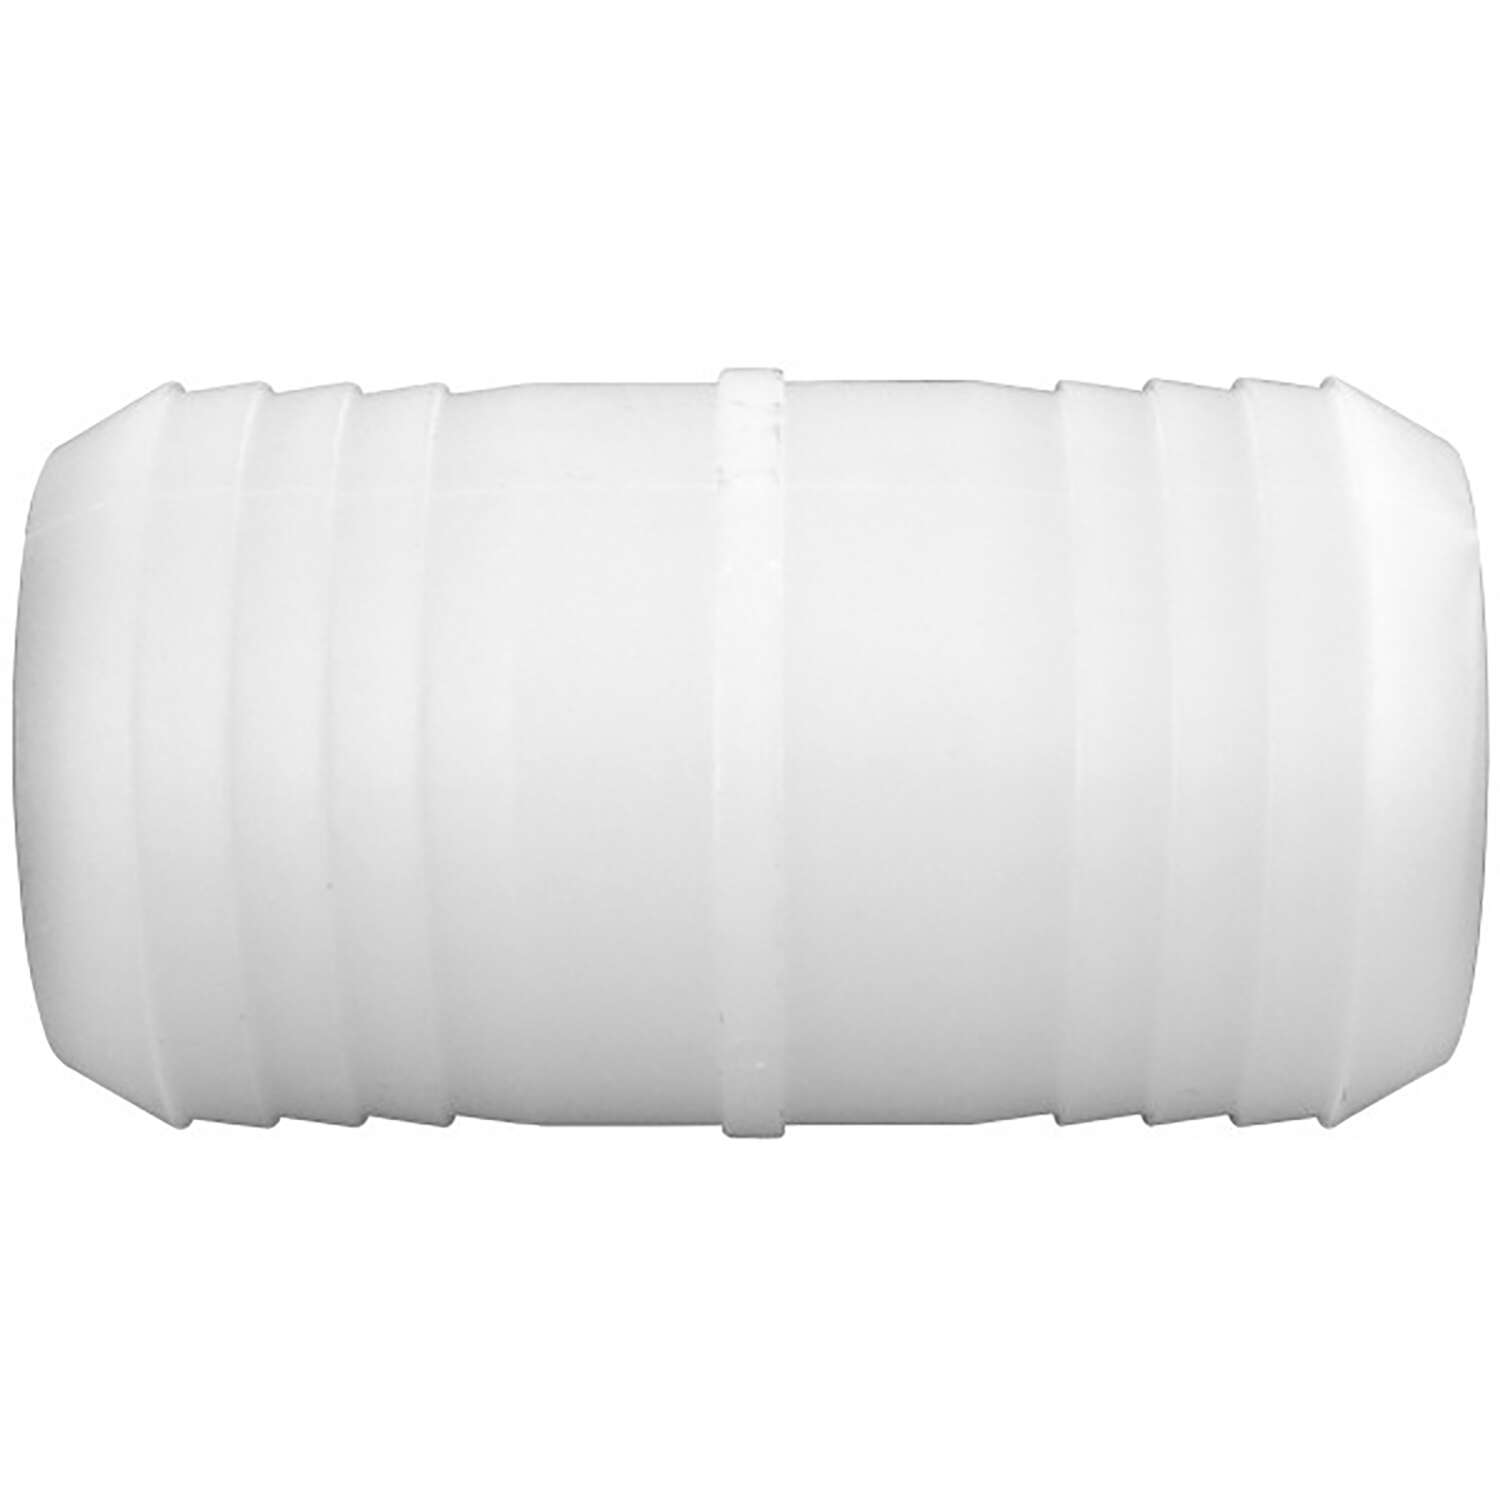 Green Leaf  1-1/4 in. Barb   x 1-1/4 in. Dia. Barb  Nylon  Hose Adapter